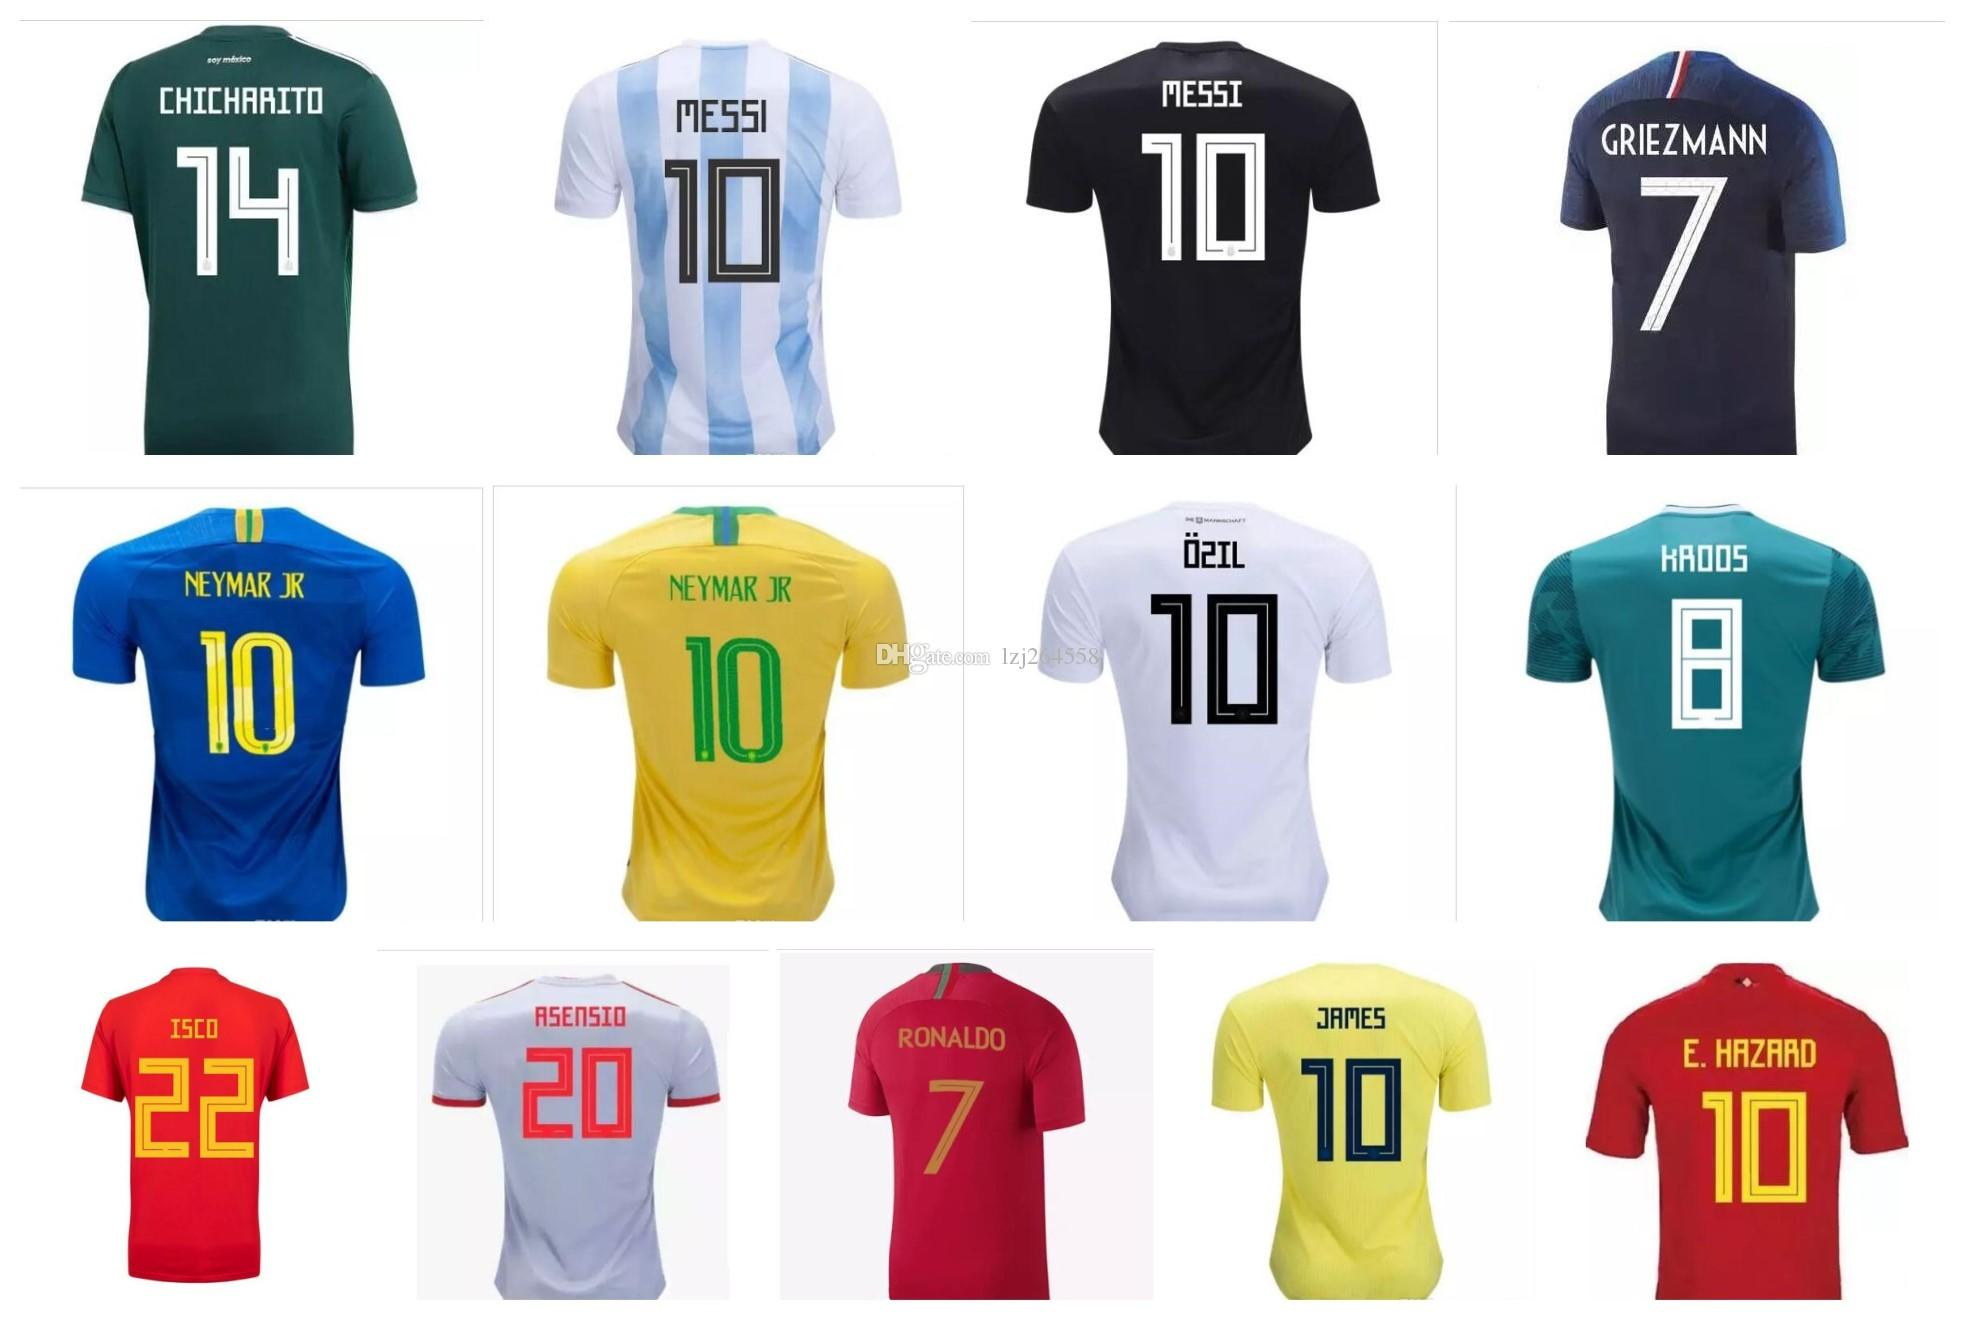 brand new 3ba06 12f53 2018 2018 World Cup Soccer Jerseys,Chandal Spain Mexico Argentina Messi  Jersey 18 19 Colombia Belgium Brazil Mbappé Ronaldo Football Shirt 4xl From  ...